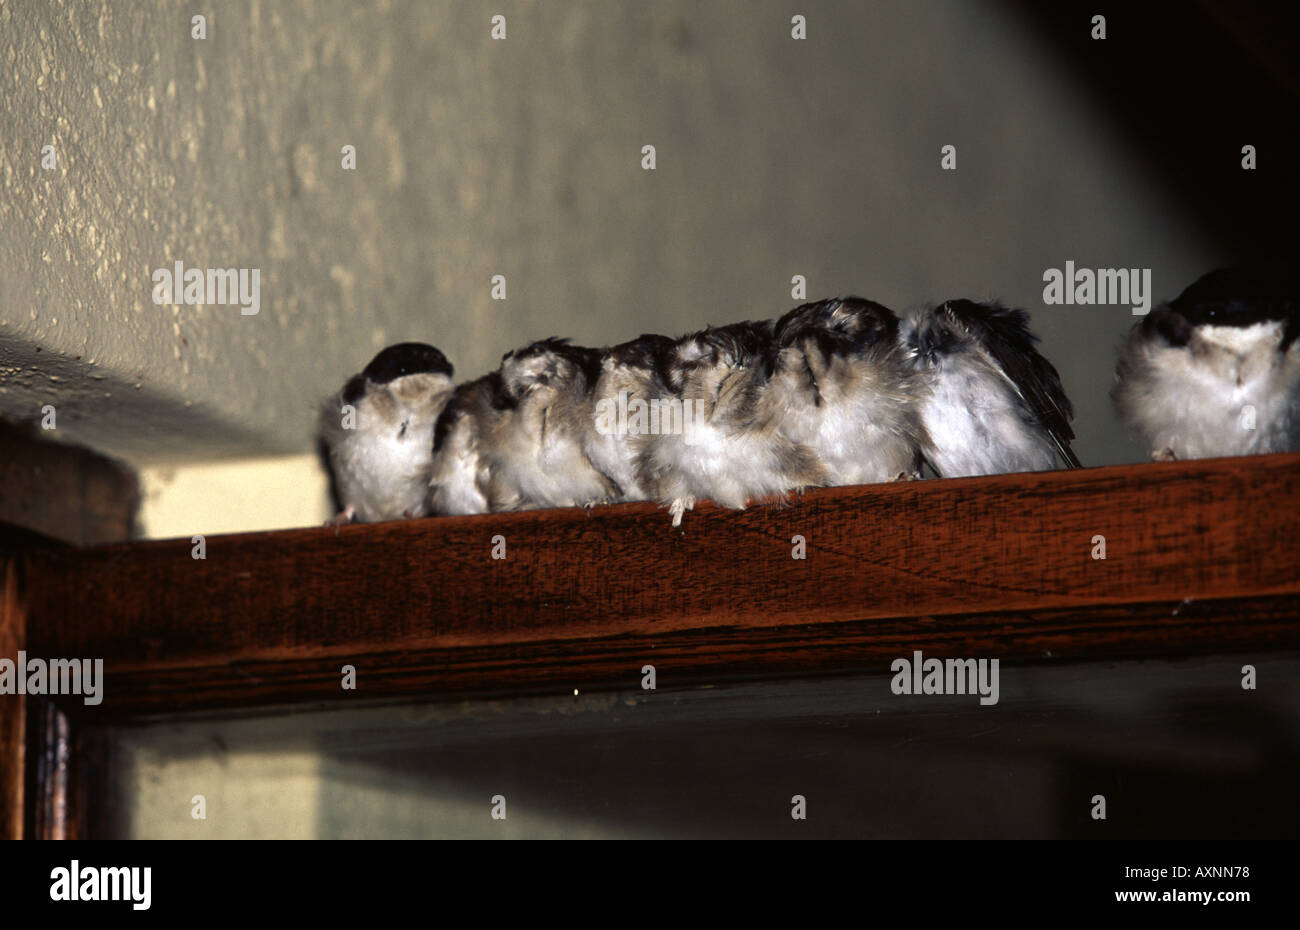 Pearl-breasted Swallow, Hirundo dimidata - Stock Image